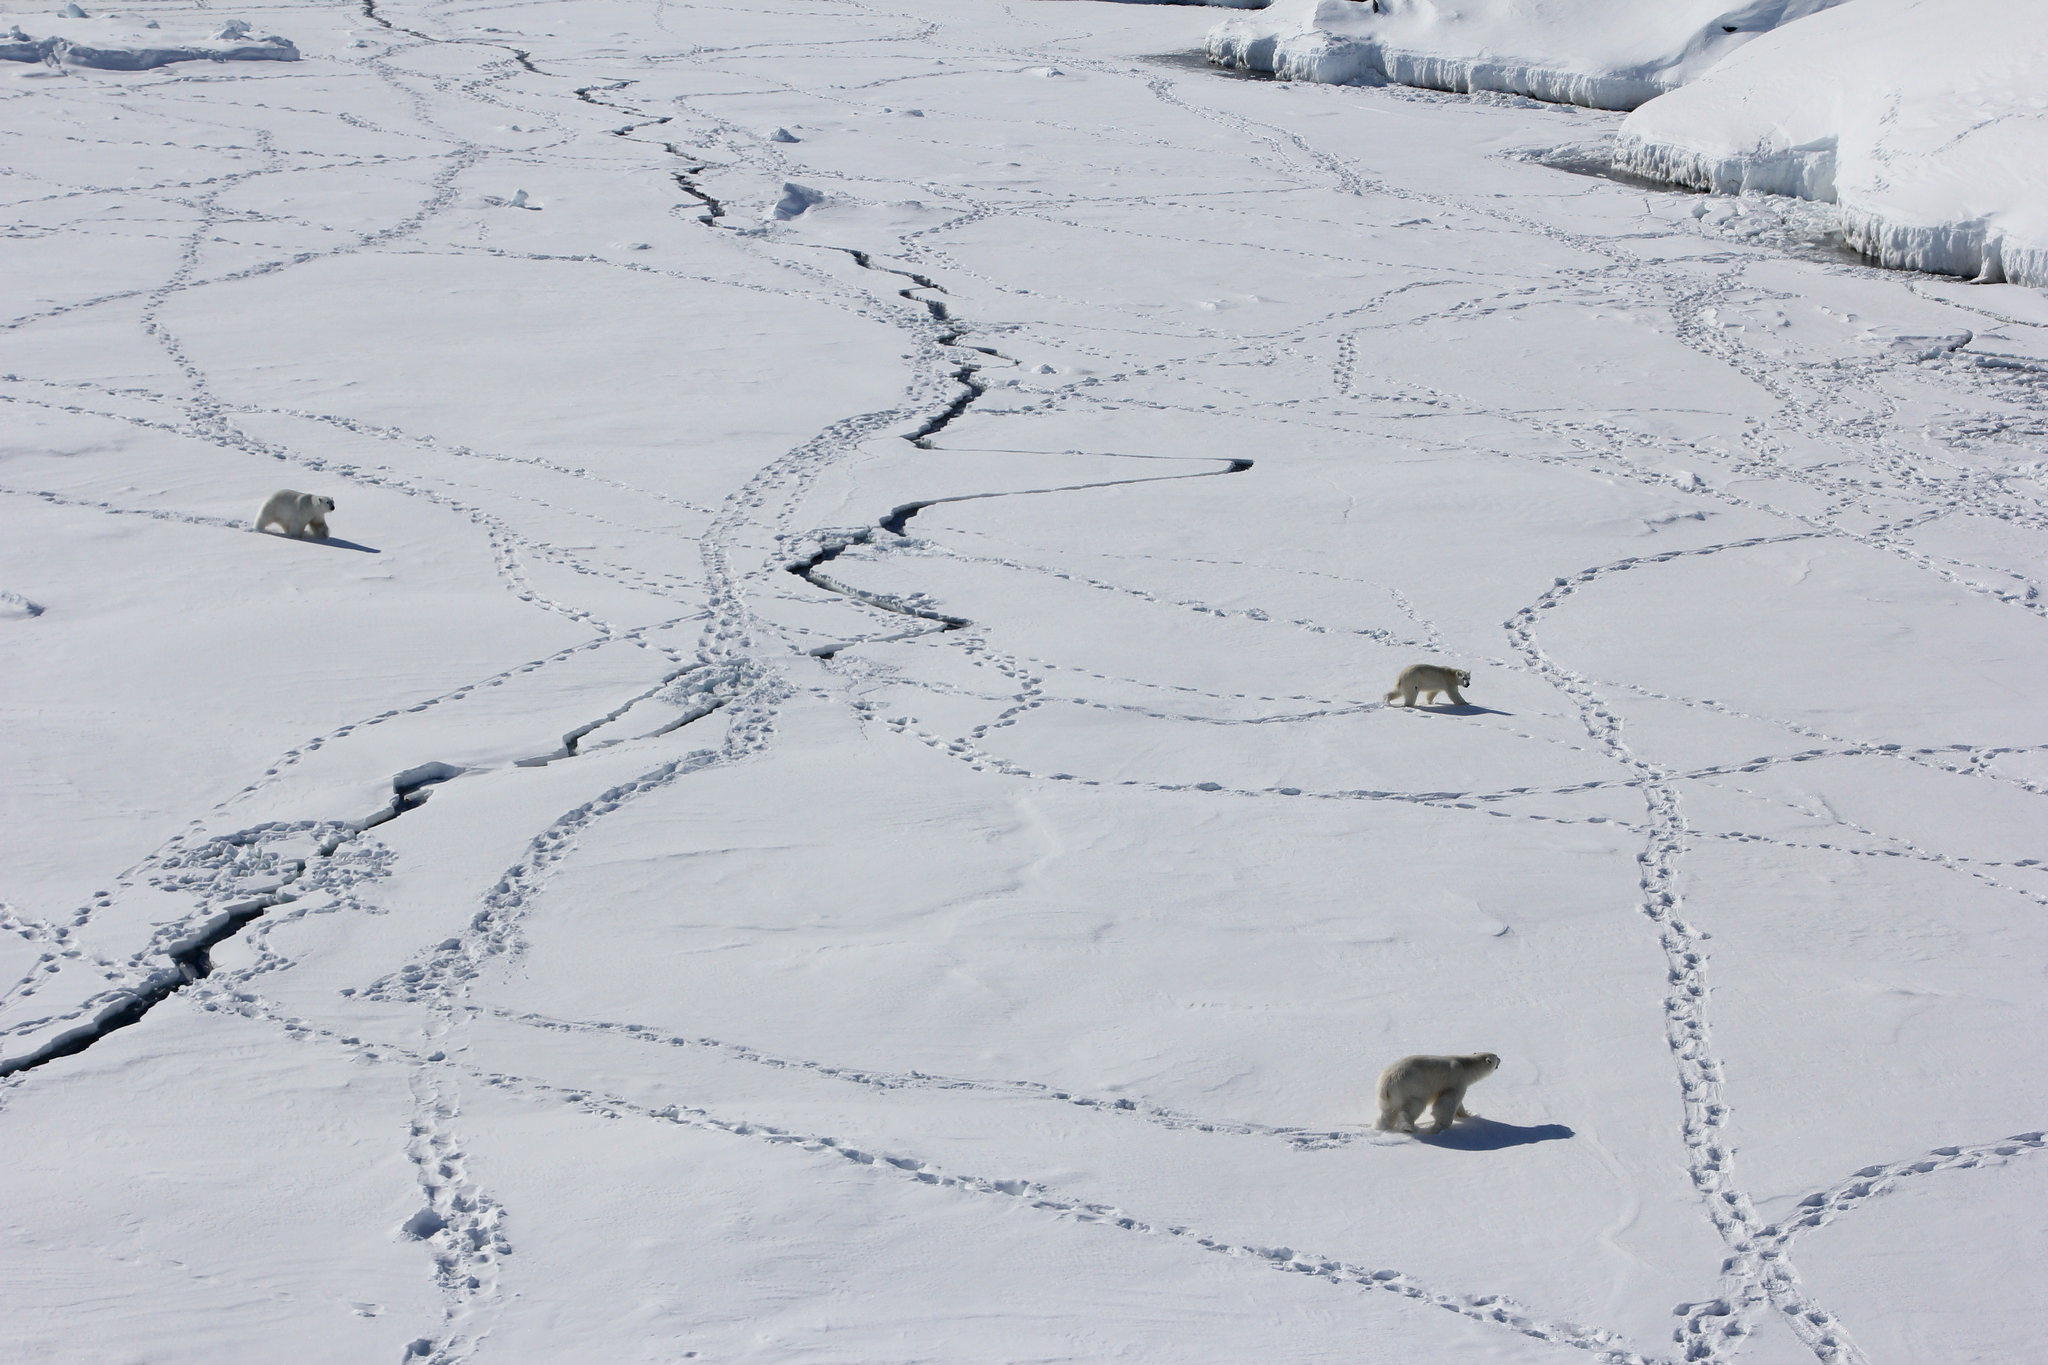 Three Polar Bears Cross Tracked Ice